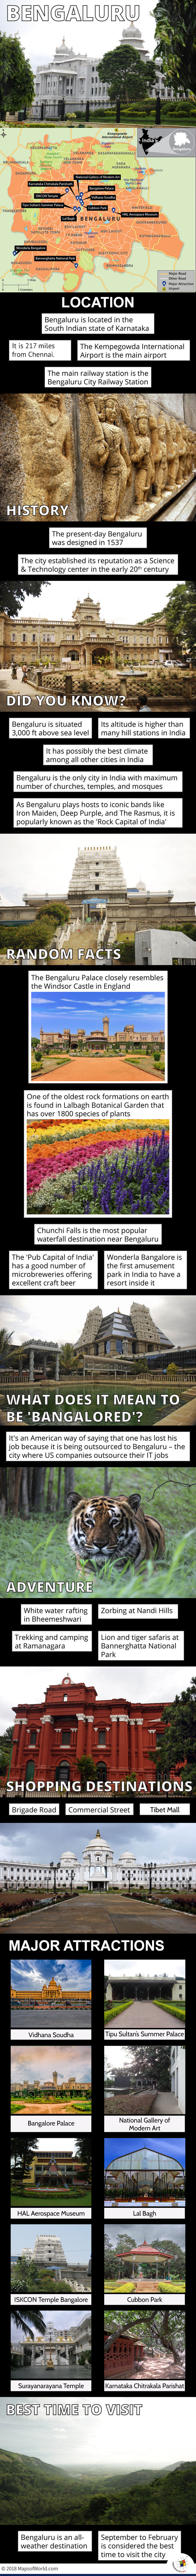 Infographic Depicting Bengaluru Tourist Attractions